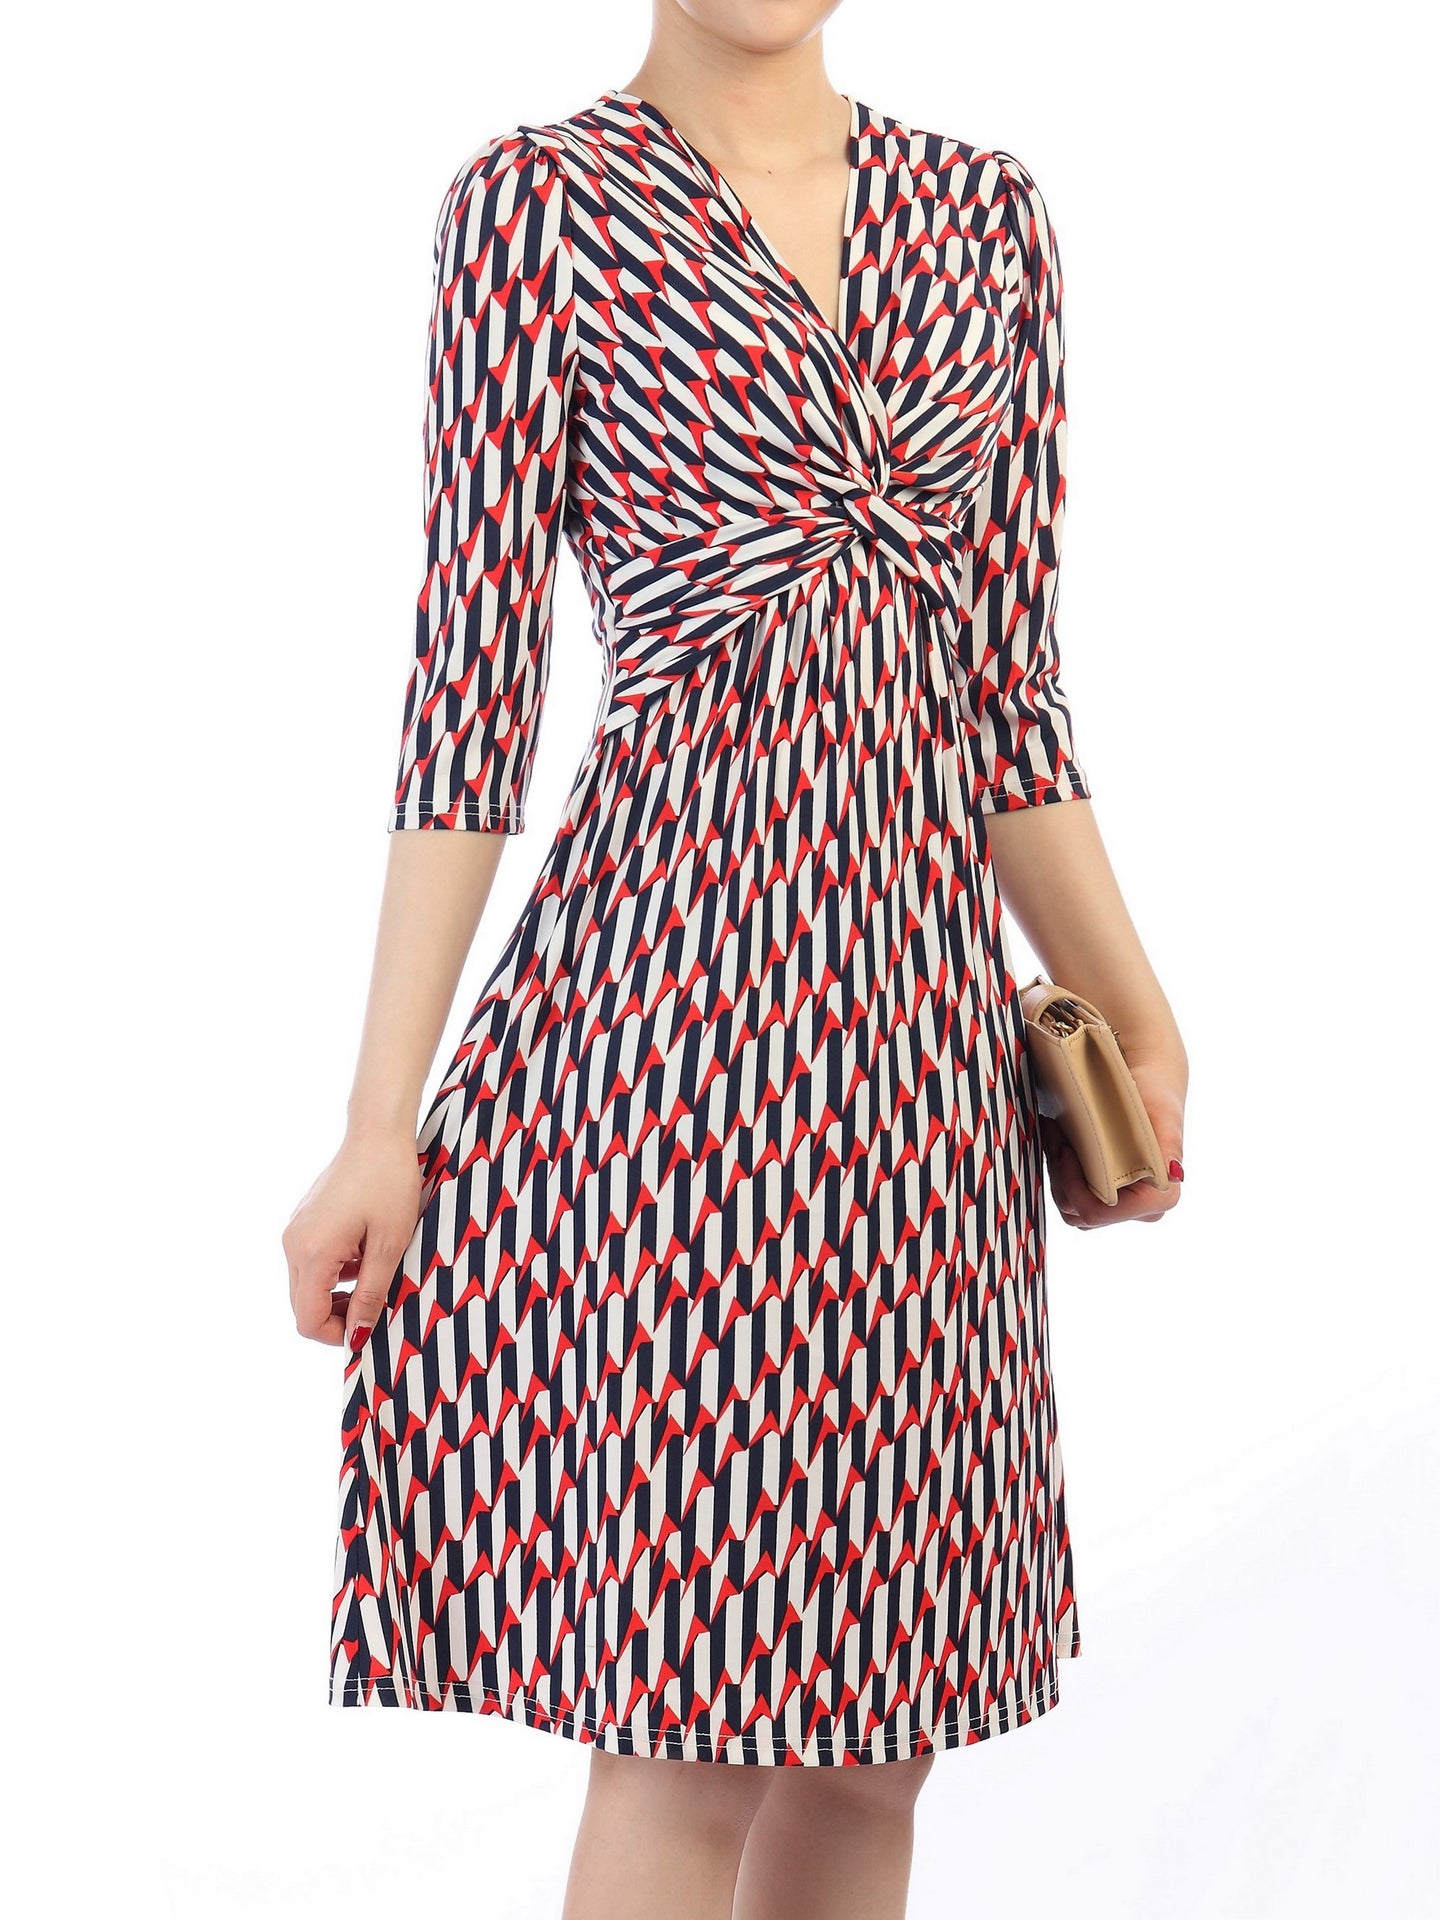 Jolie Moi Twist Front Print Dress, Red Multi